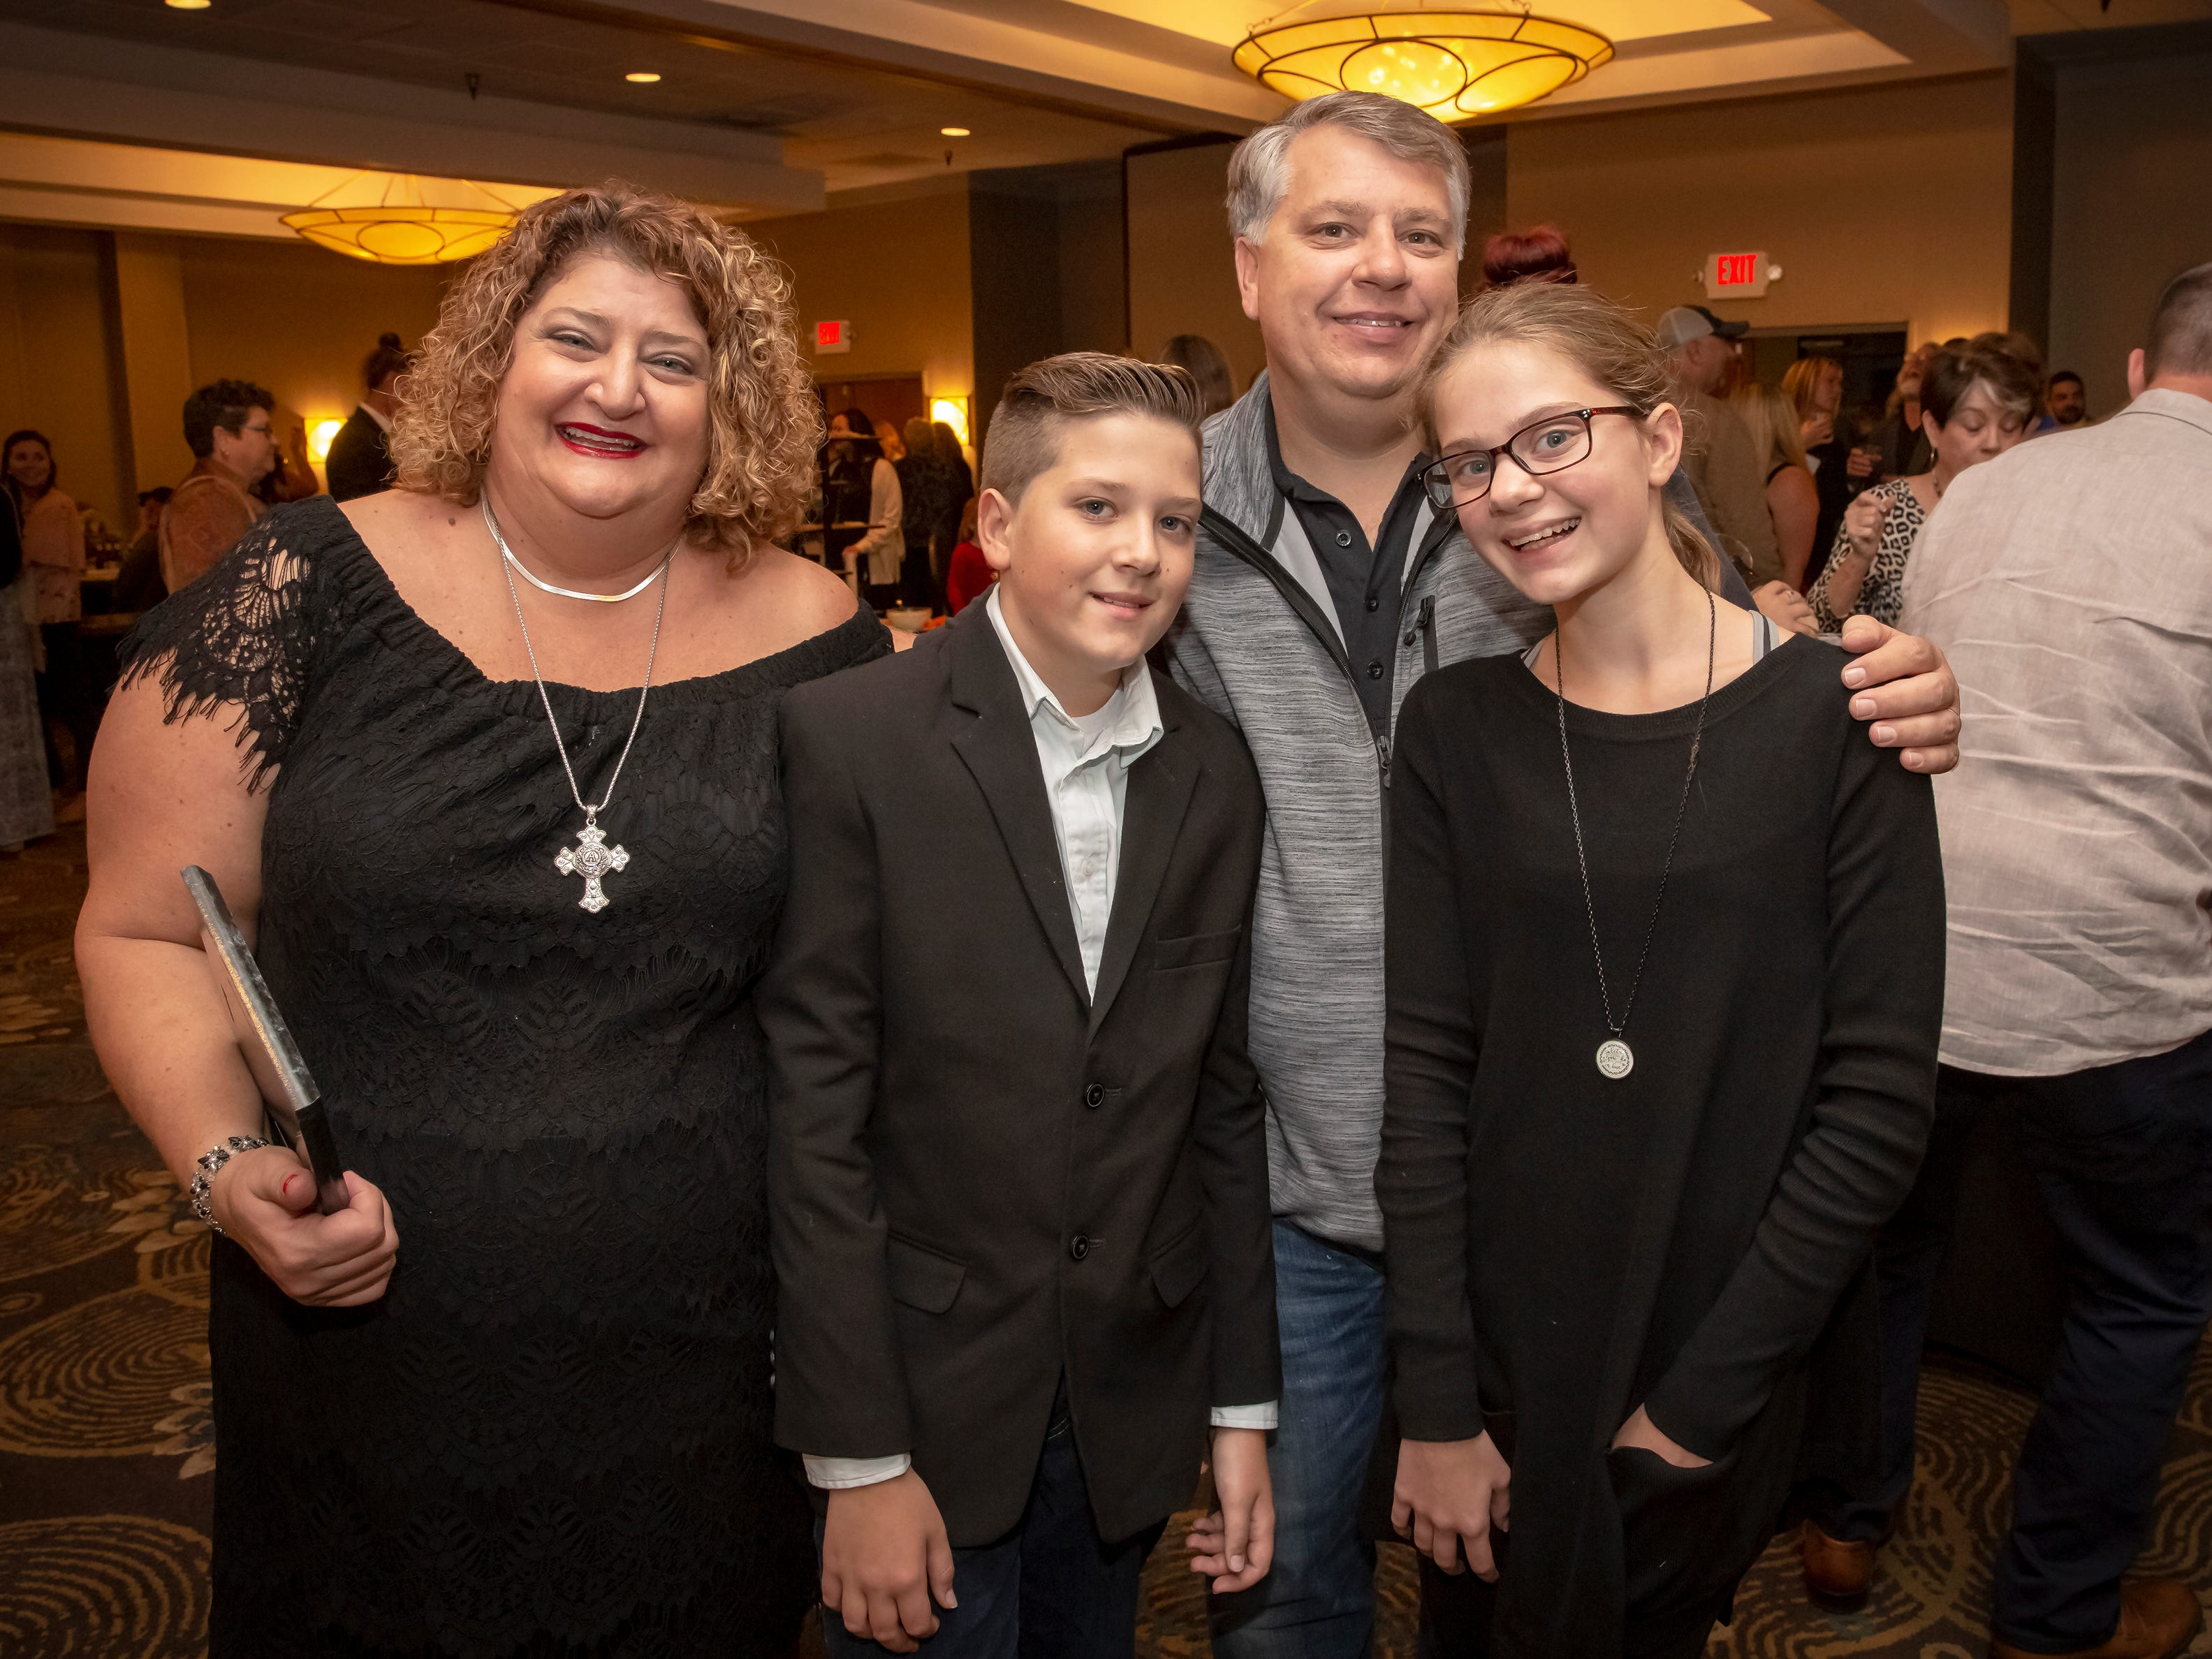 Camille, Jason, Charlie and Lily Arkenberg at the 24th annual Ruthie awards held at DoubleTree on Old Fort Parkway.